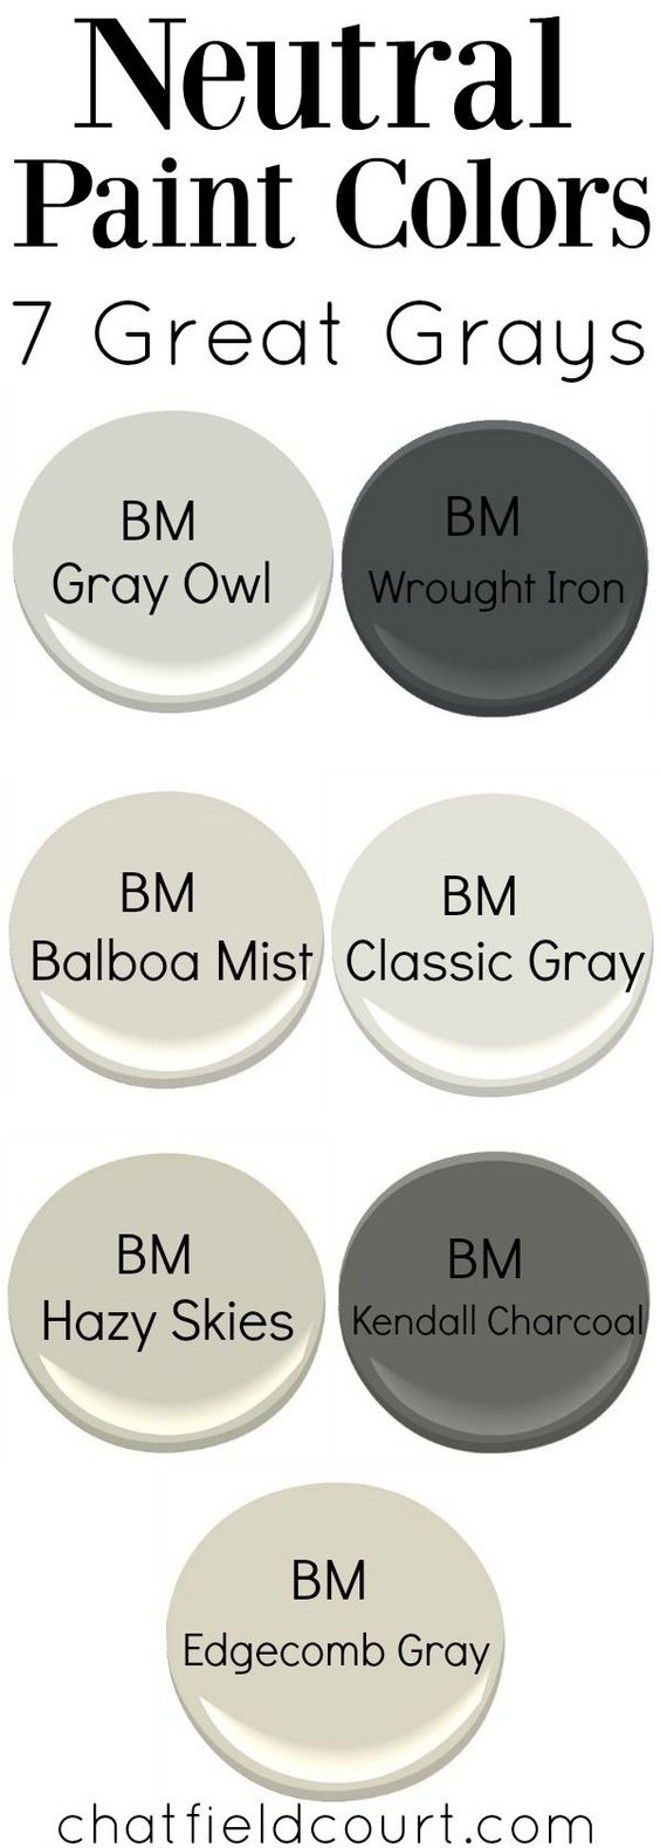 Grey Paint Colors. Popular Benjamin Moore Grey Paint Colors. There are so many great grays to choose from, but here are my 7 favorite gray paint colors from Benjamin Moore. Benjamin Moore Gray Owl. Benjamin Moore Wrought Iron. Benjamin Moore Balboa Mist. Benjamin Moore Classic Gray. Benjamin Moore Hazy Skies. Benjamin Moore Kendall Charcoal. Benjamin Moore Edgecomb Gray. Via Chatfield Court.